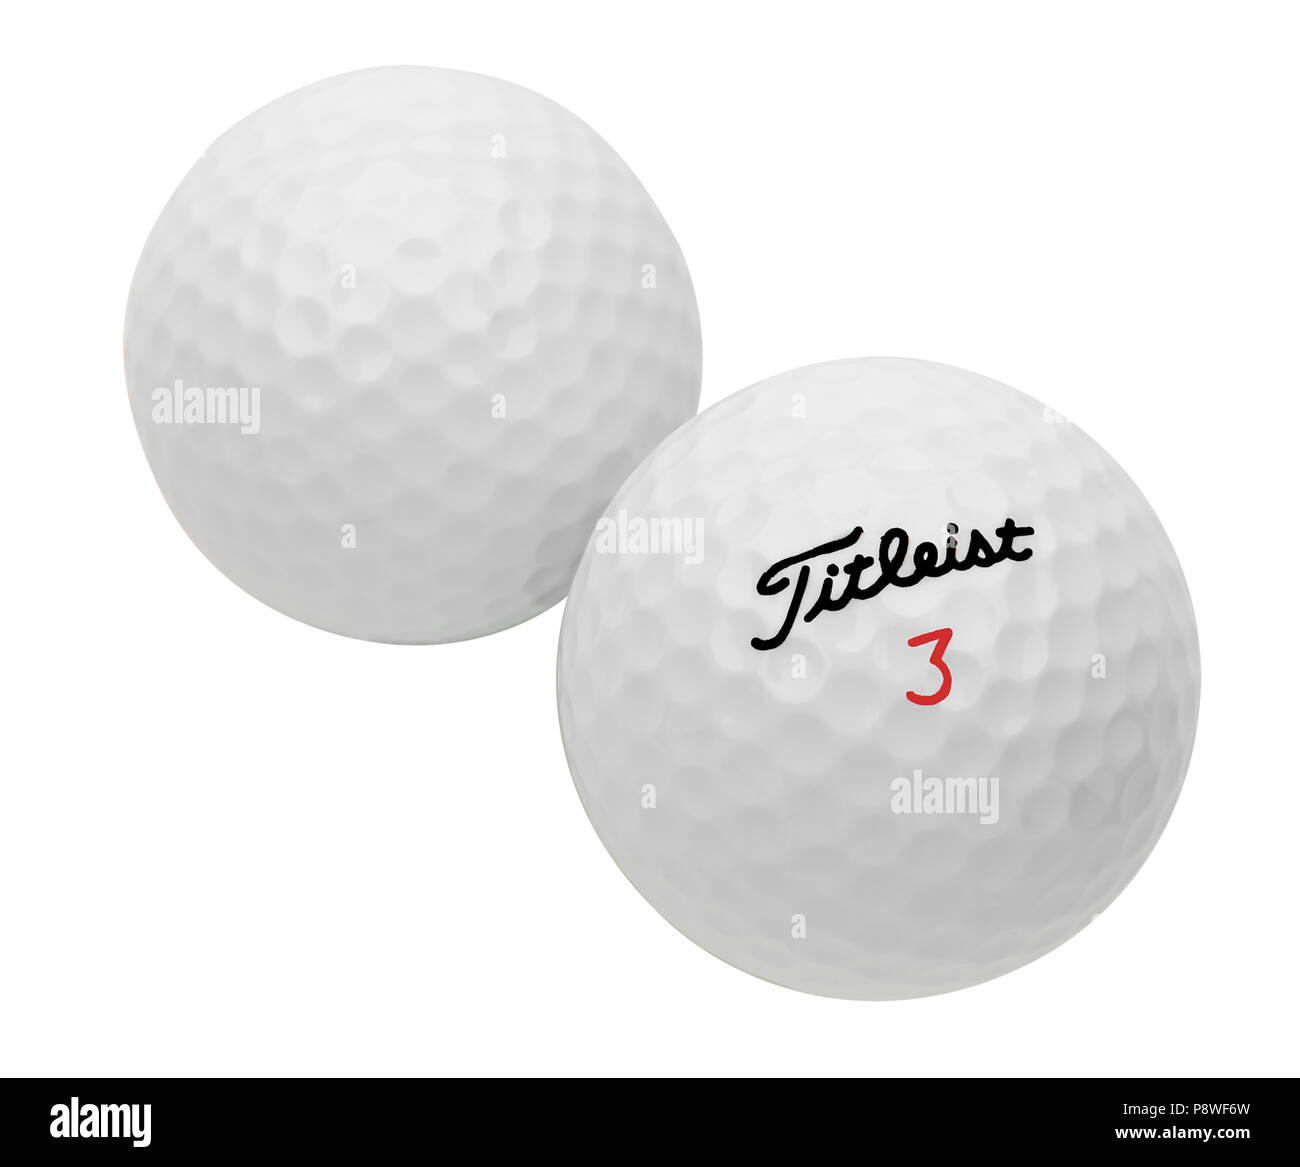 Titleist Golf Balls - Stock Image